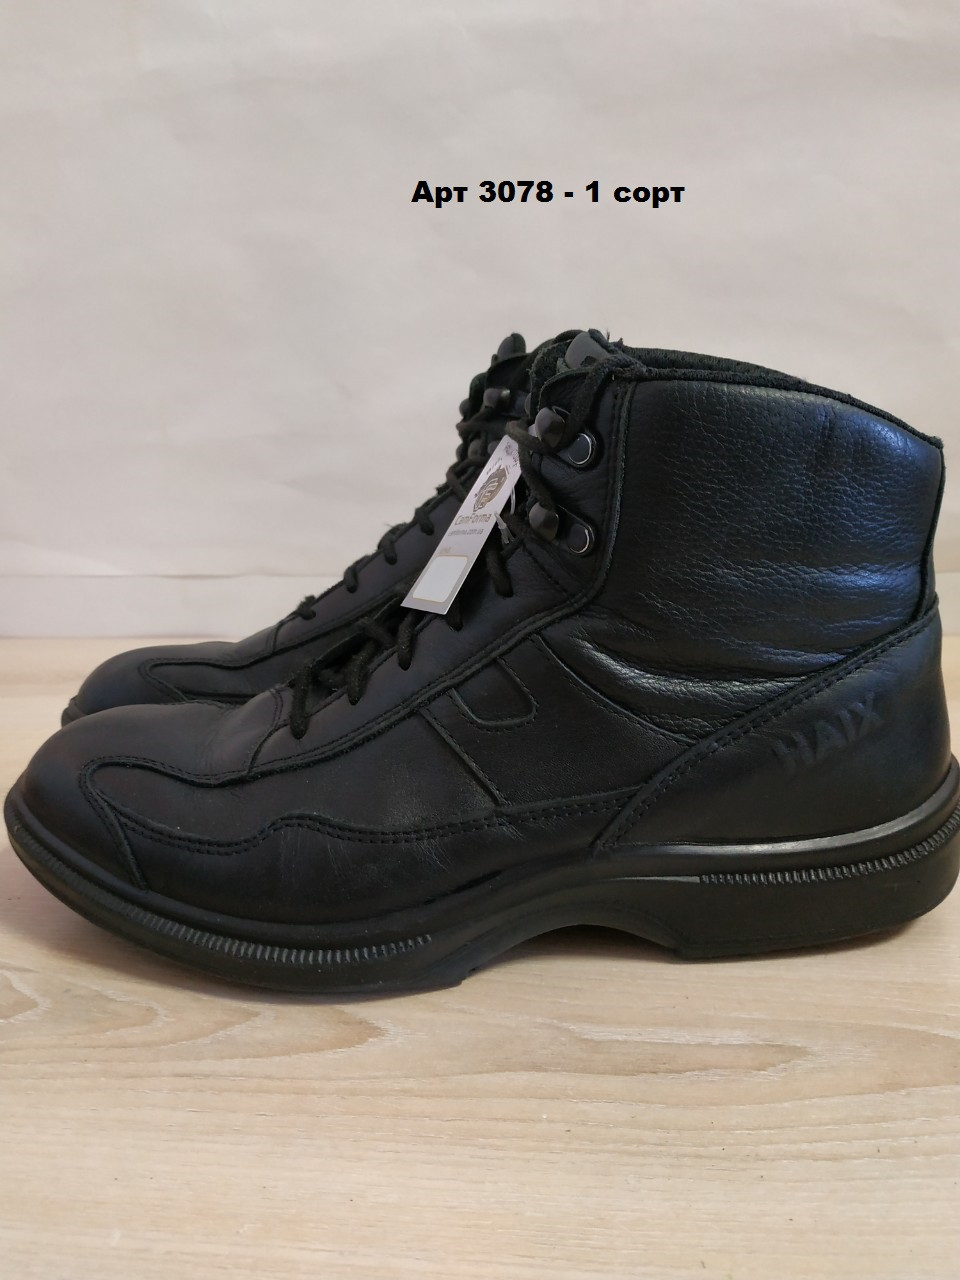 Ботинки HAIX AIRPOWER C71 GORE-TEX® Police Men's Original New II Quality Б/У 1 сорт